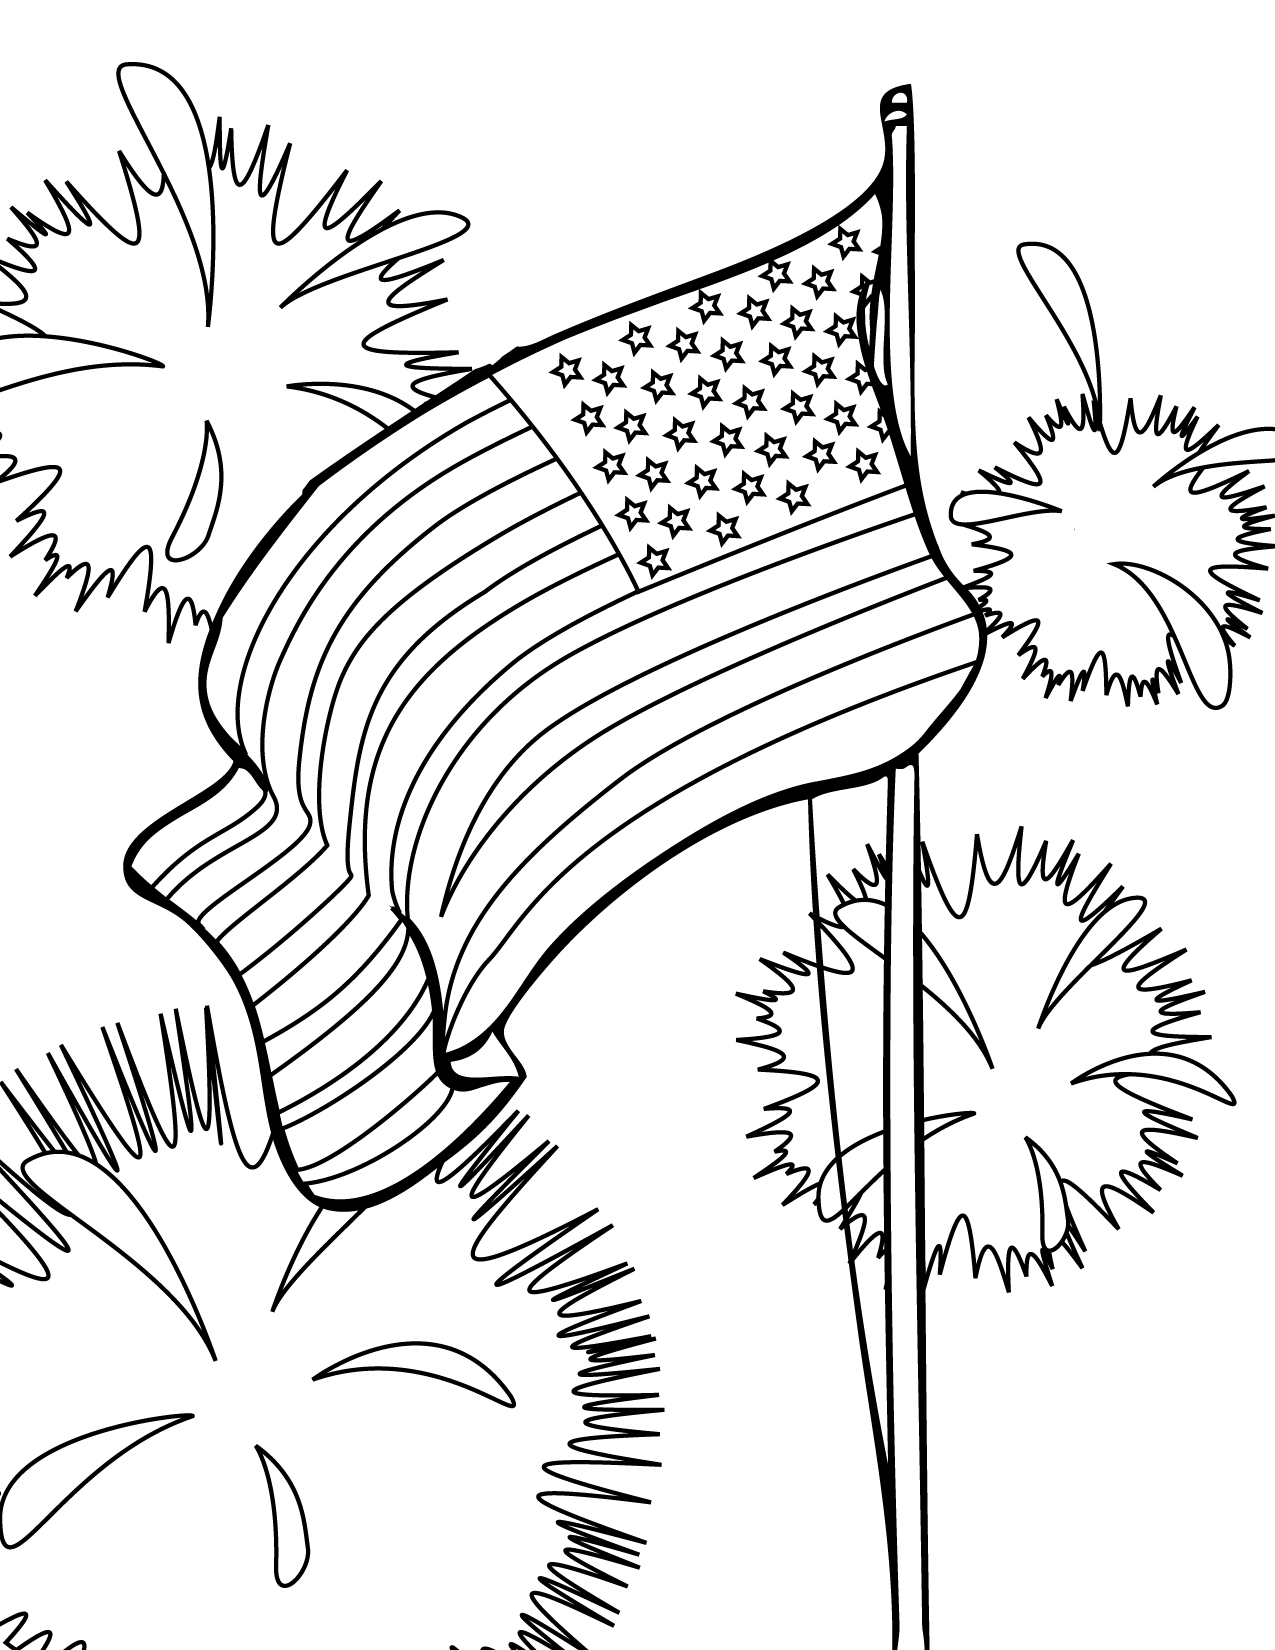 4th of july flag coloring pages | 4th of July Coloring Pages - Best Coloring Pages For Kids